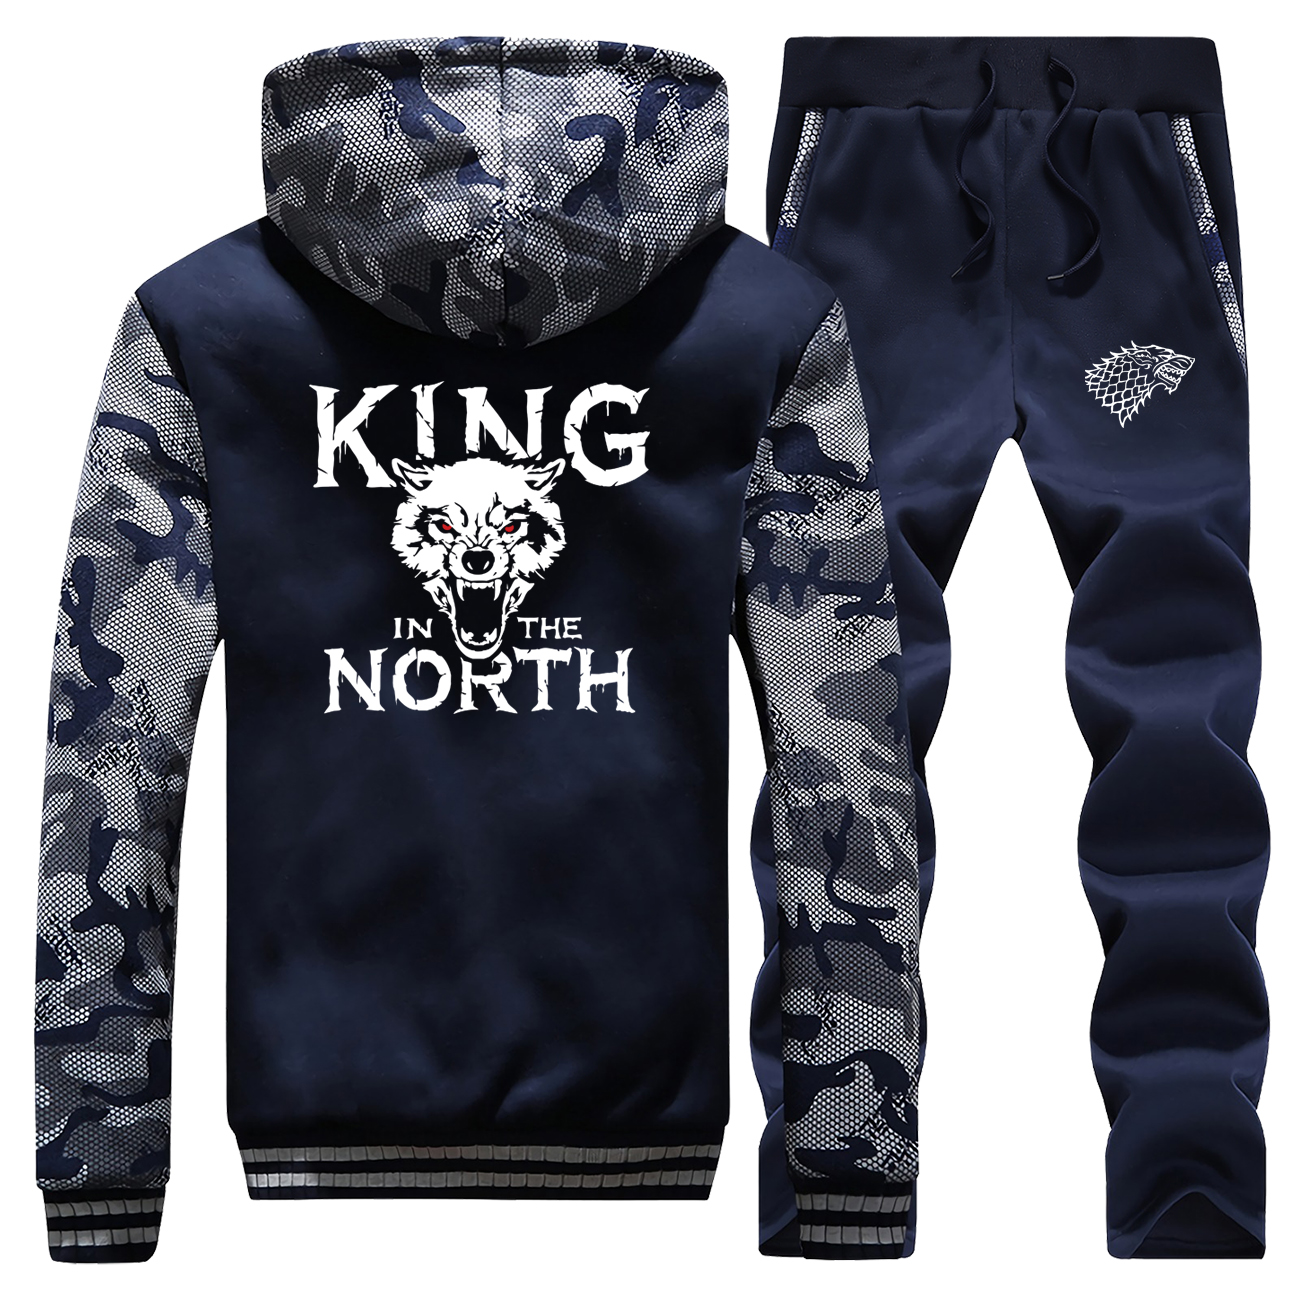 King In The North Thick Hoodie Winter Men's Warm Sweatshirt+Pants 2 Piece Sets Game Of Thrones Zip Hoodies Men Fashion Tracksuit